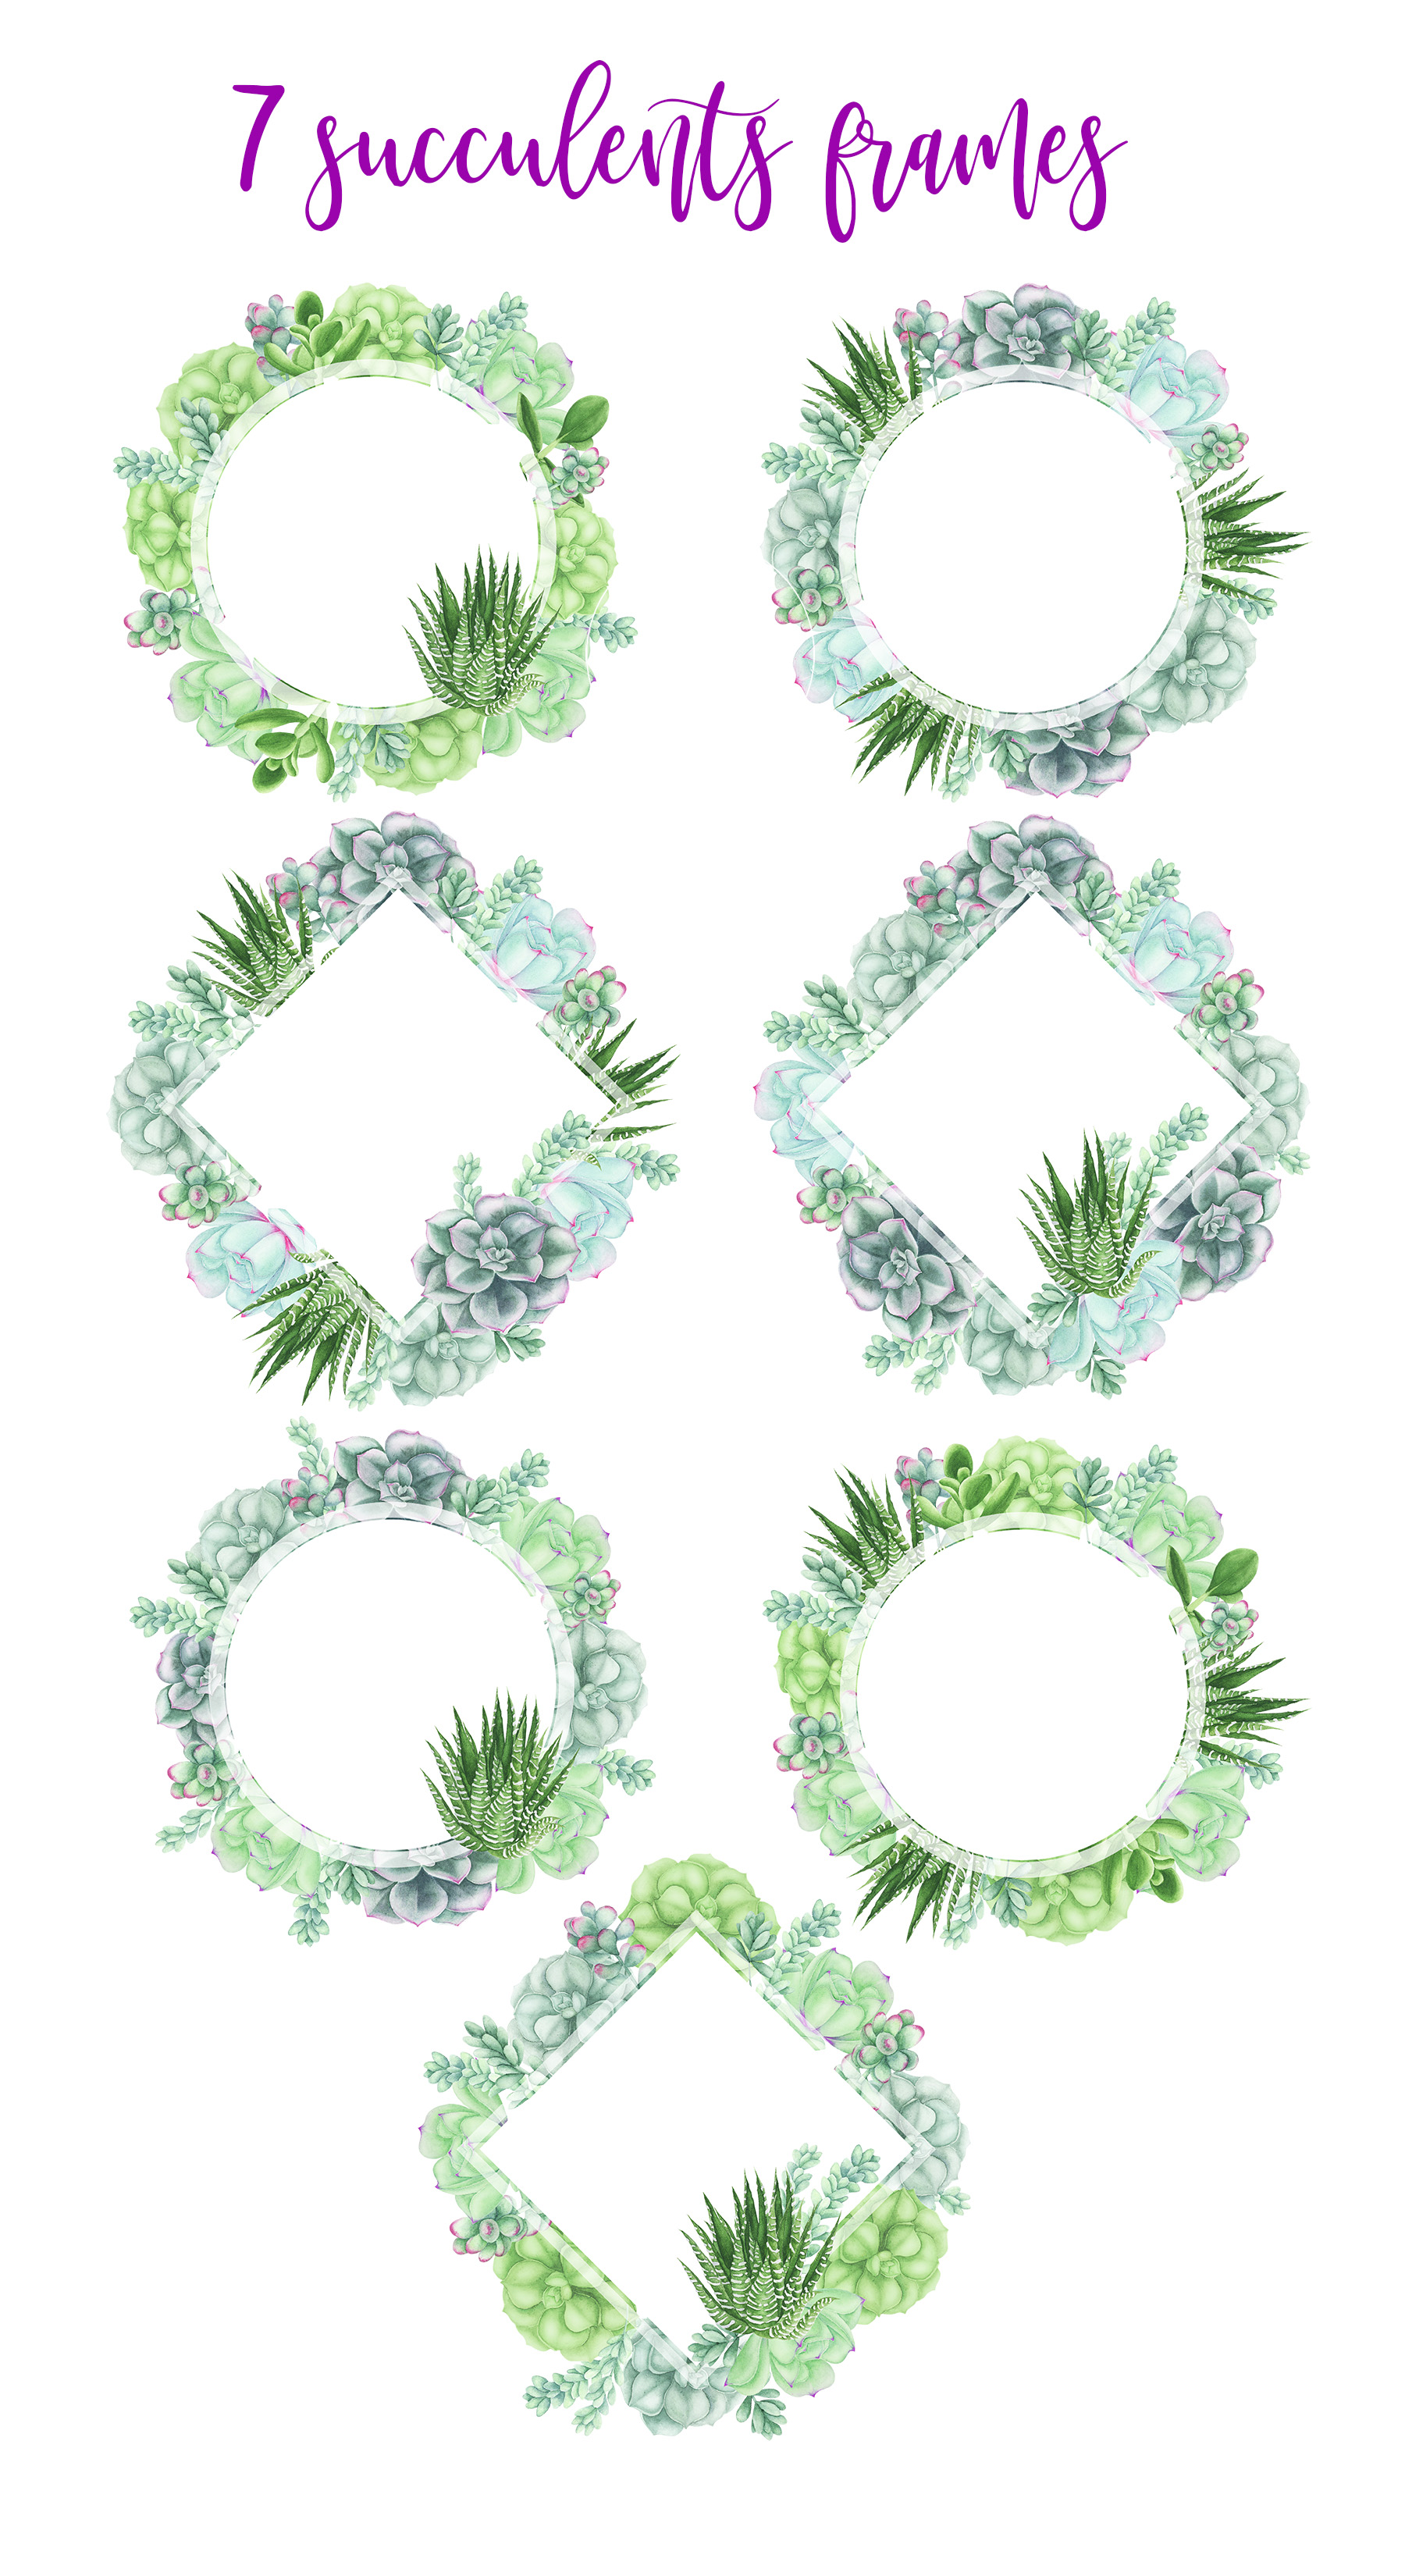 Succulents Frames and Wreaths example image 2